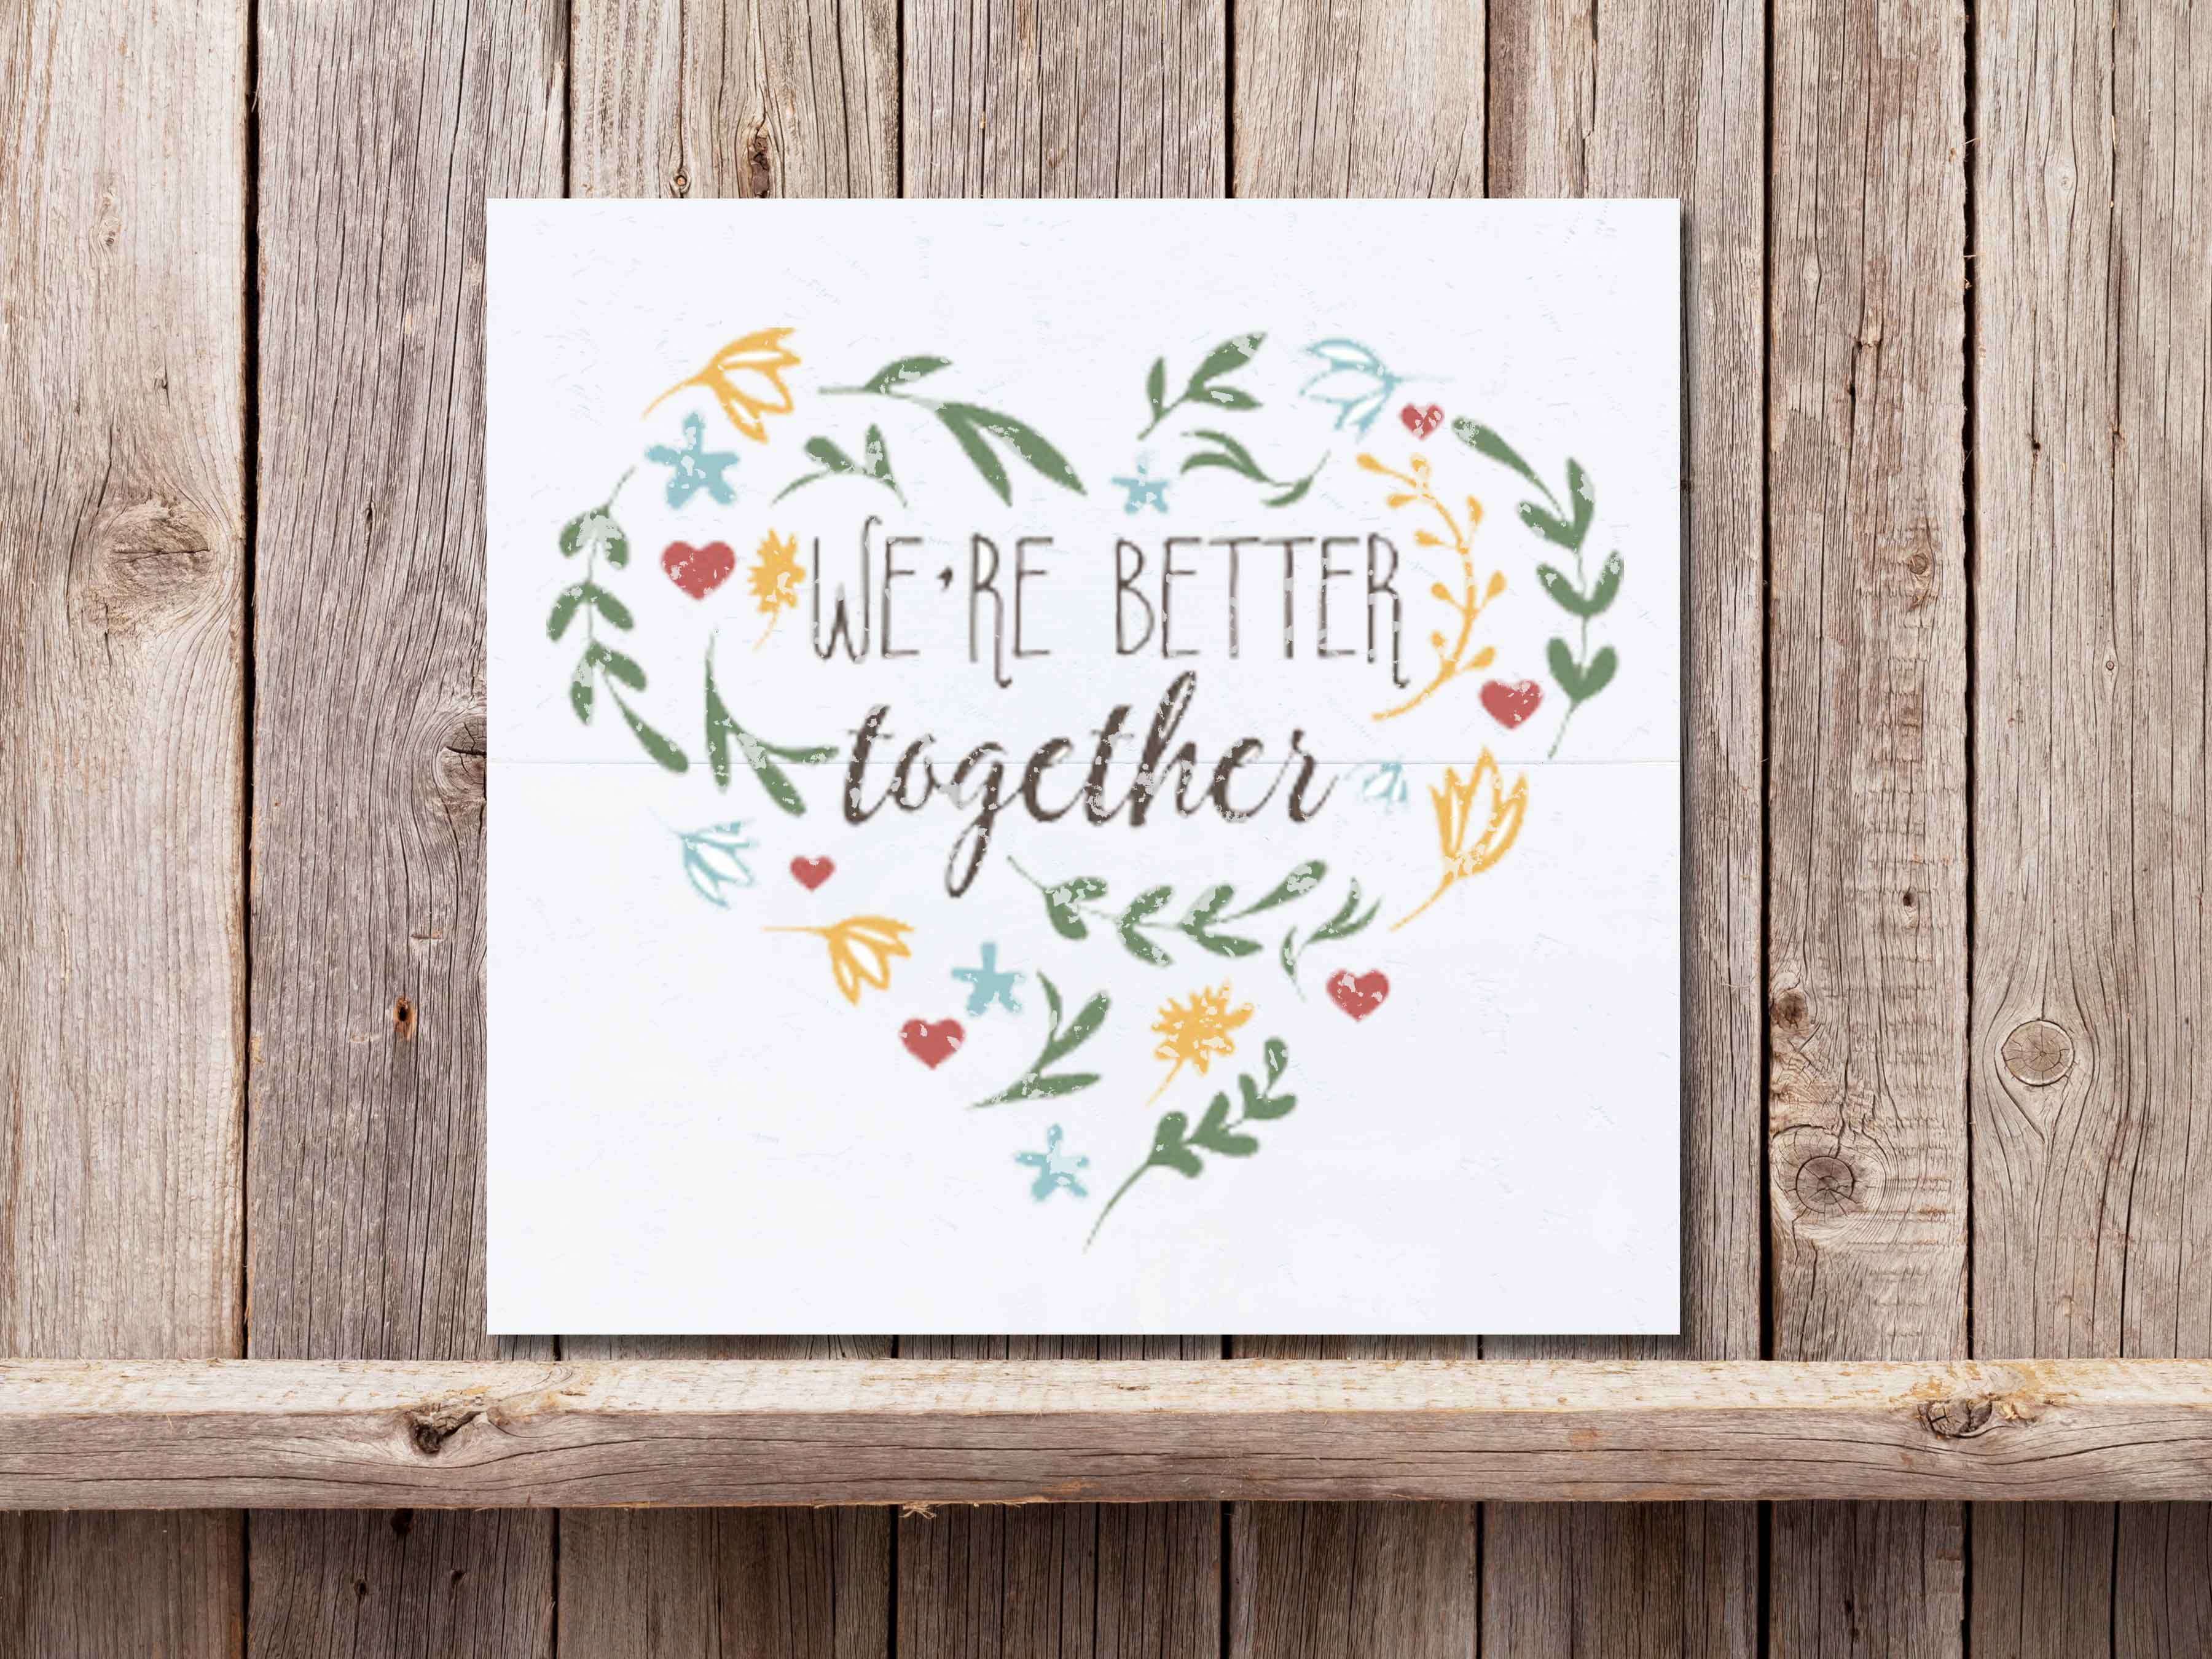 Better Together 22×24